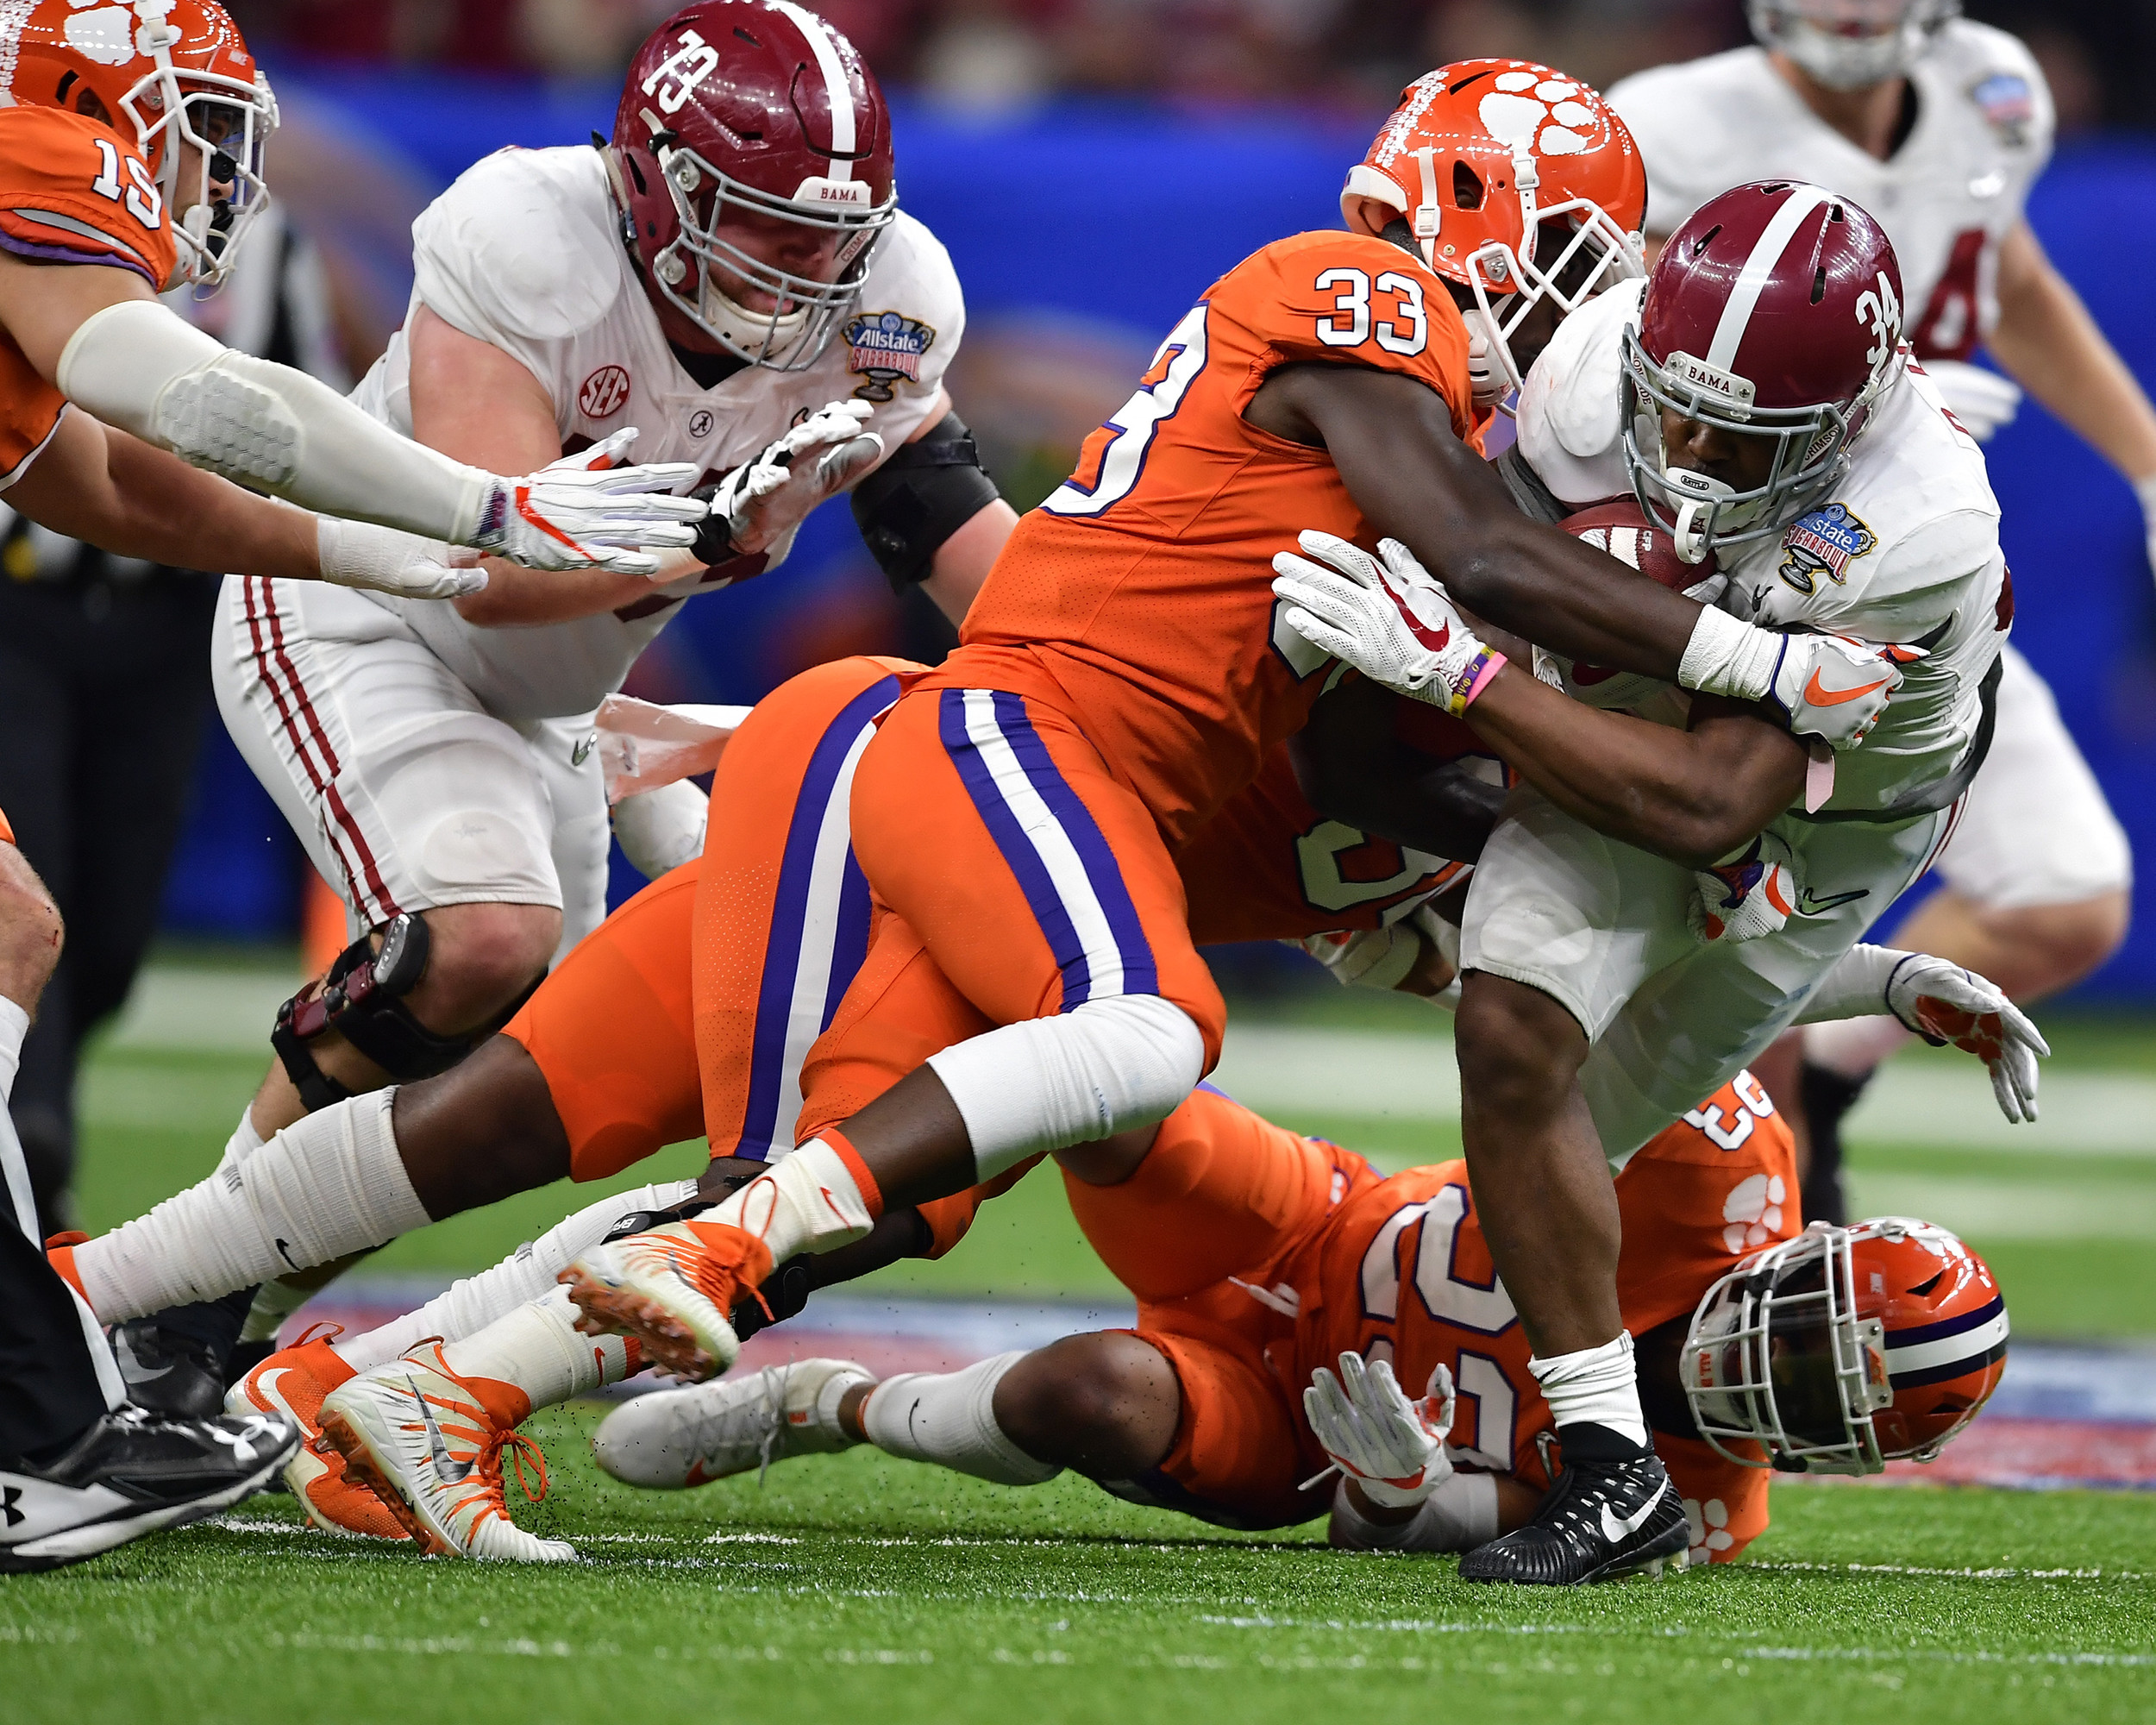 Alabama Crimson Tide running back Damien Harris (34) is tackled during the first half of the 2018 AllState Sugar Bowl on Jan. 1, 2018, at the Mercedes-Benz SuperDome in New Orleans, La. Alabama won the game 24-6. (Photo by Lee Walls)